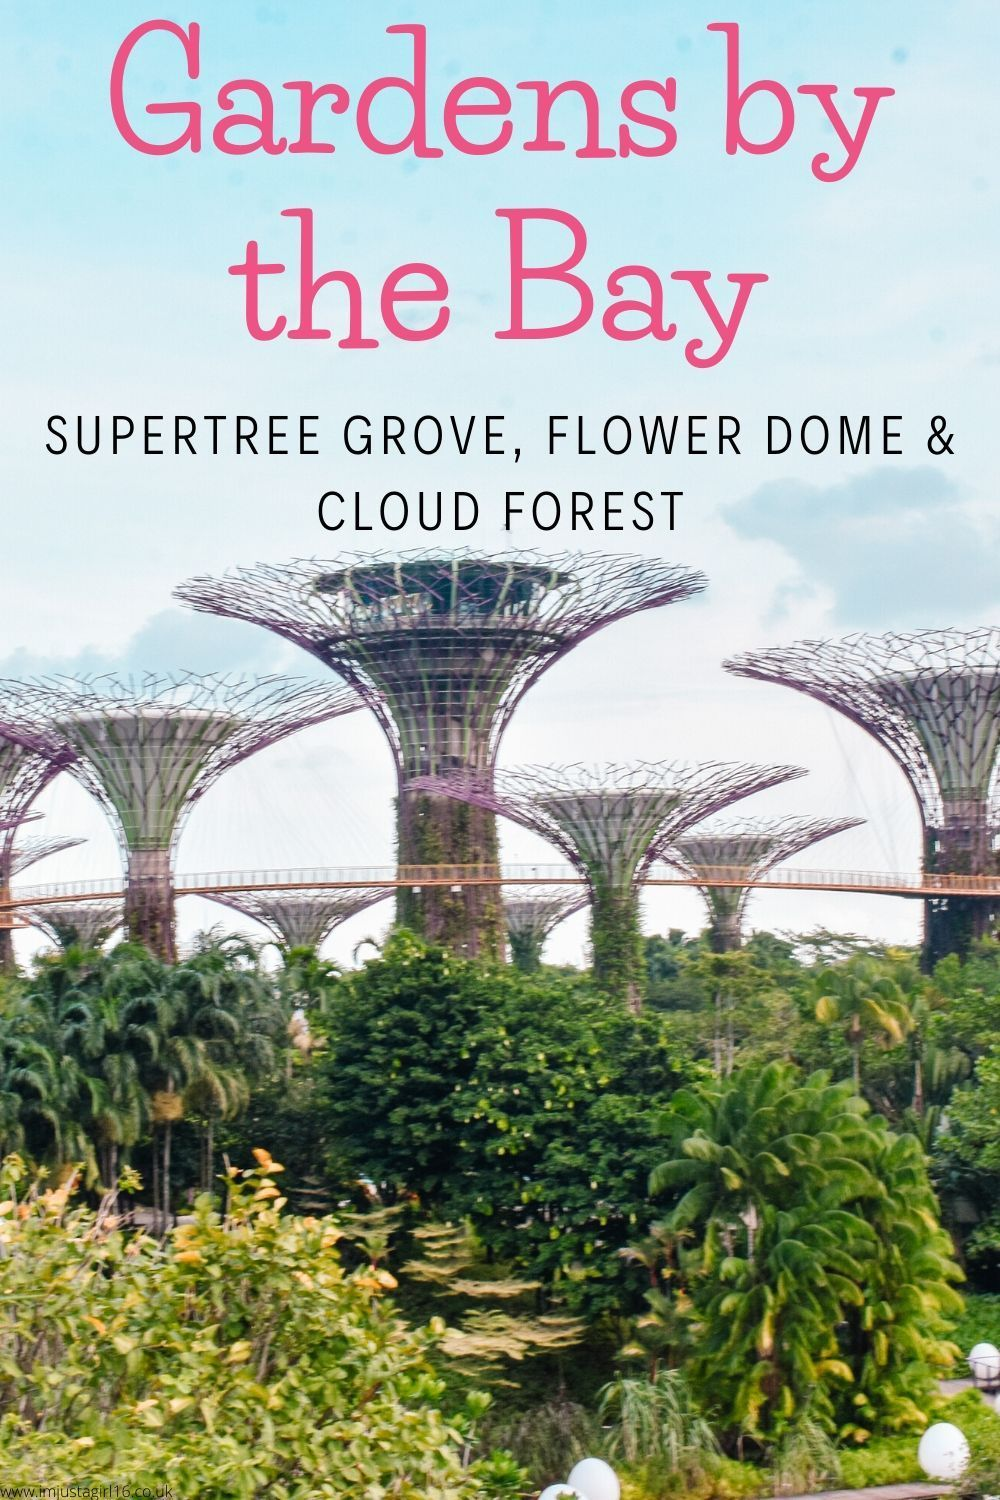 47f83f81fa62513bc8b56cc3ccf42361 - Gardens By The Bay Flower Dome Hours